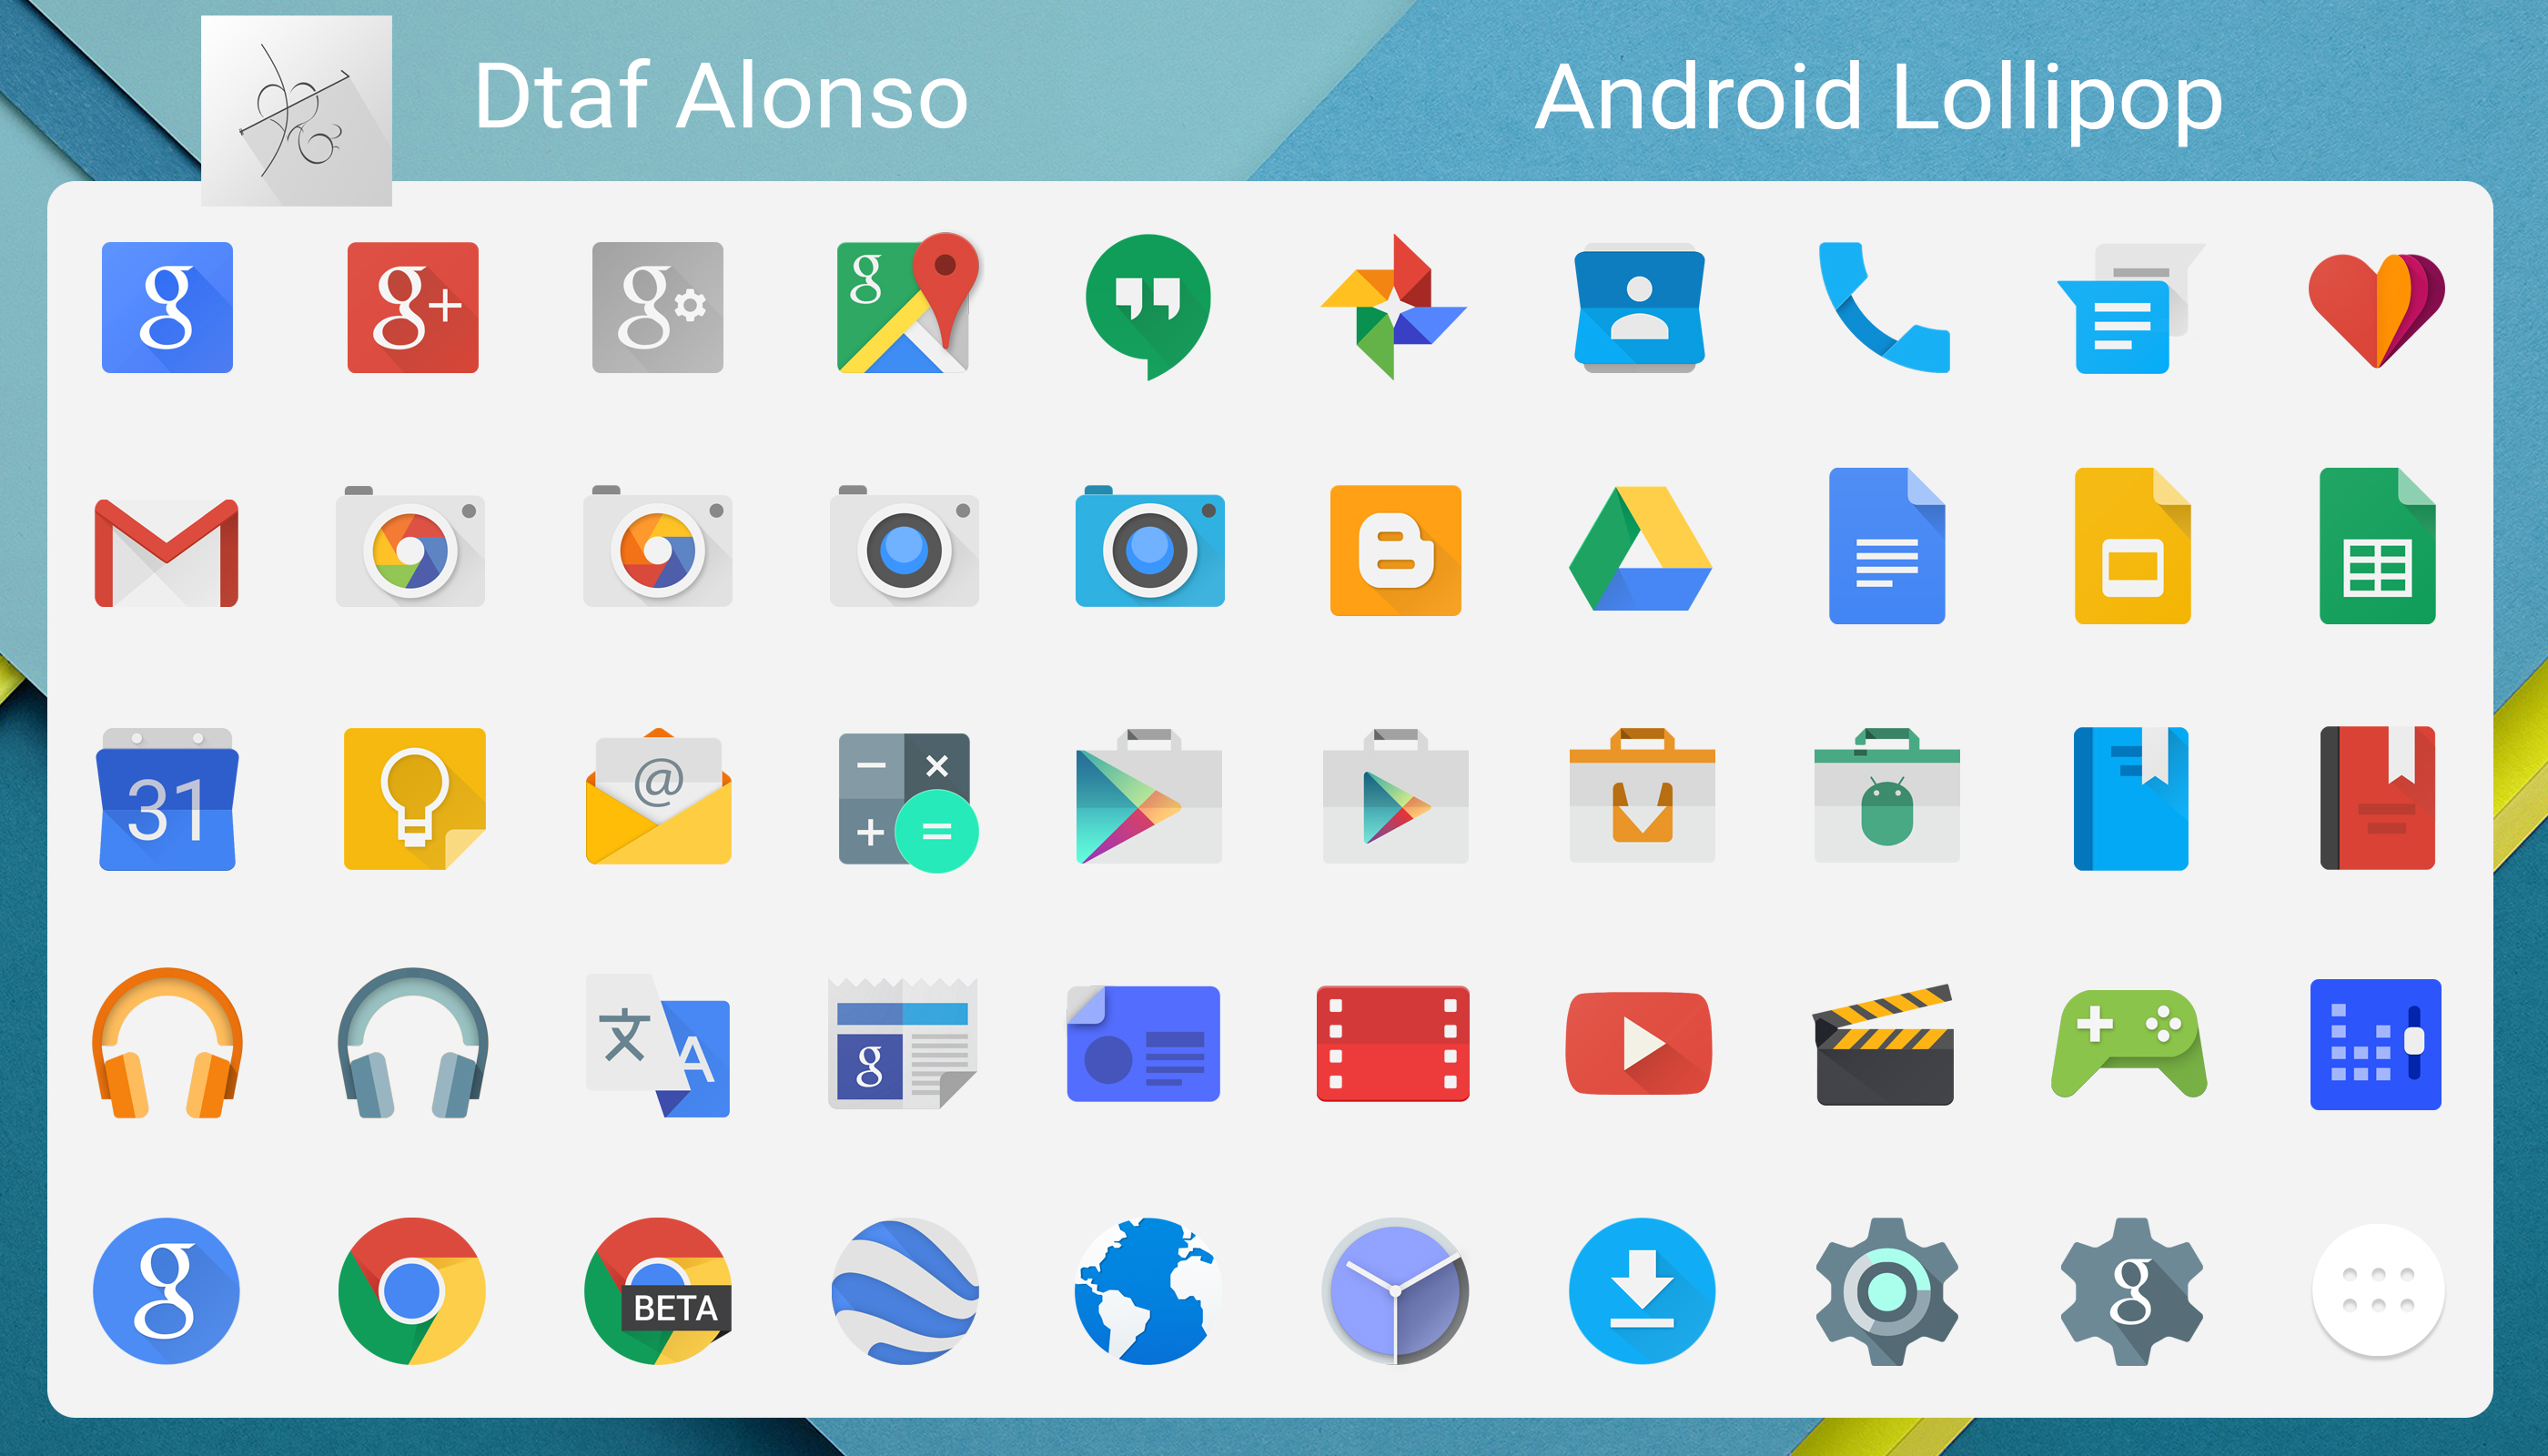 14 Android Lollipop Settings Icon Images